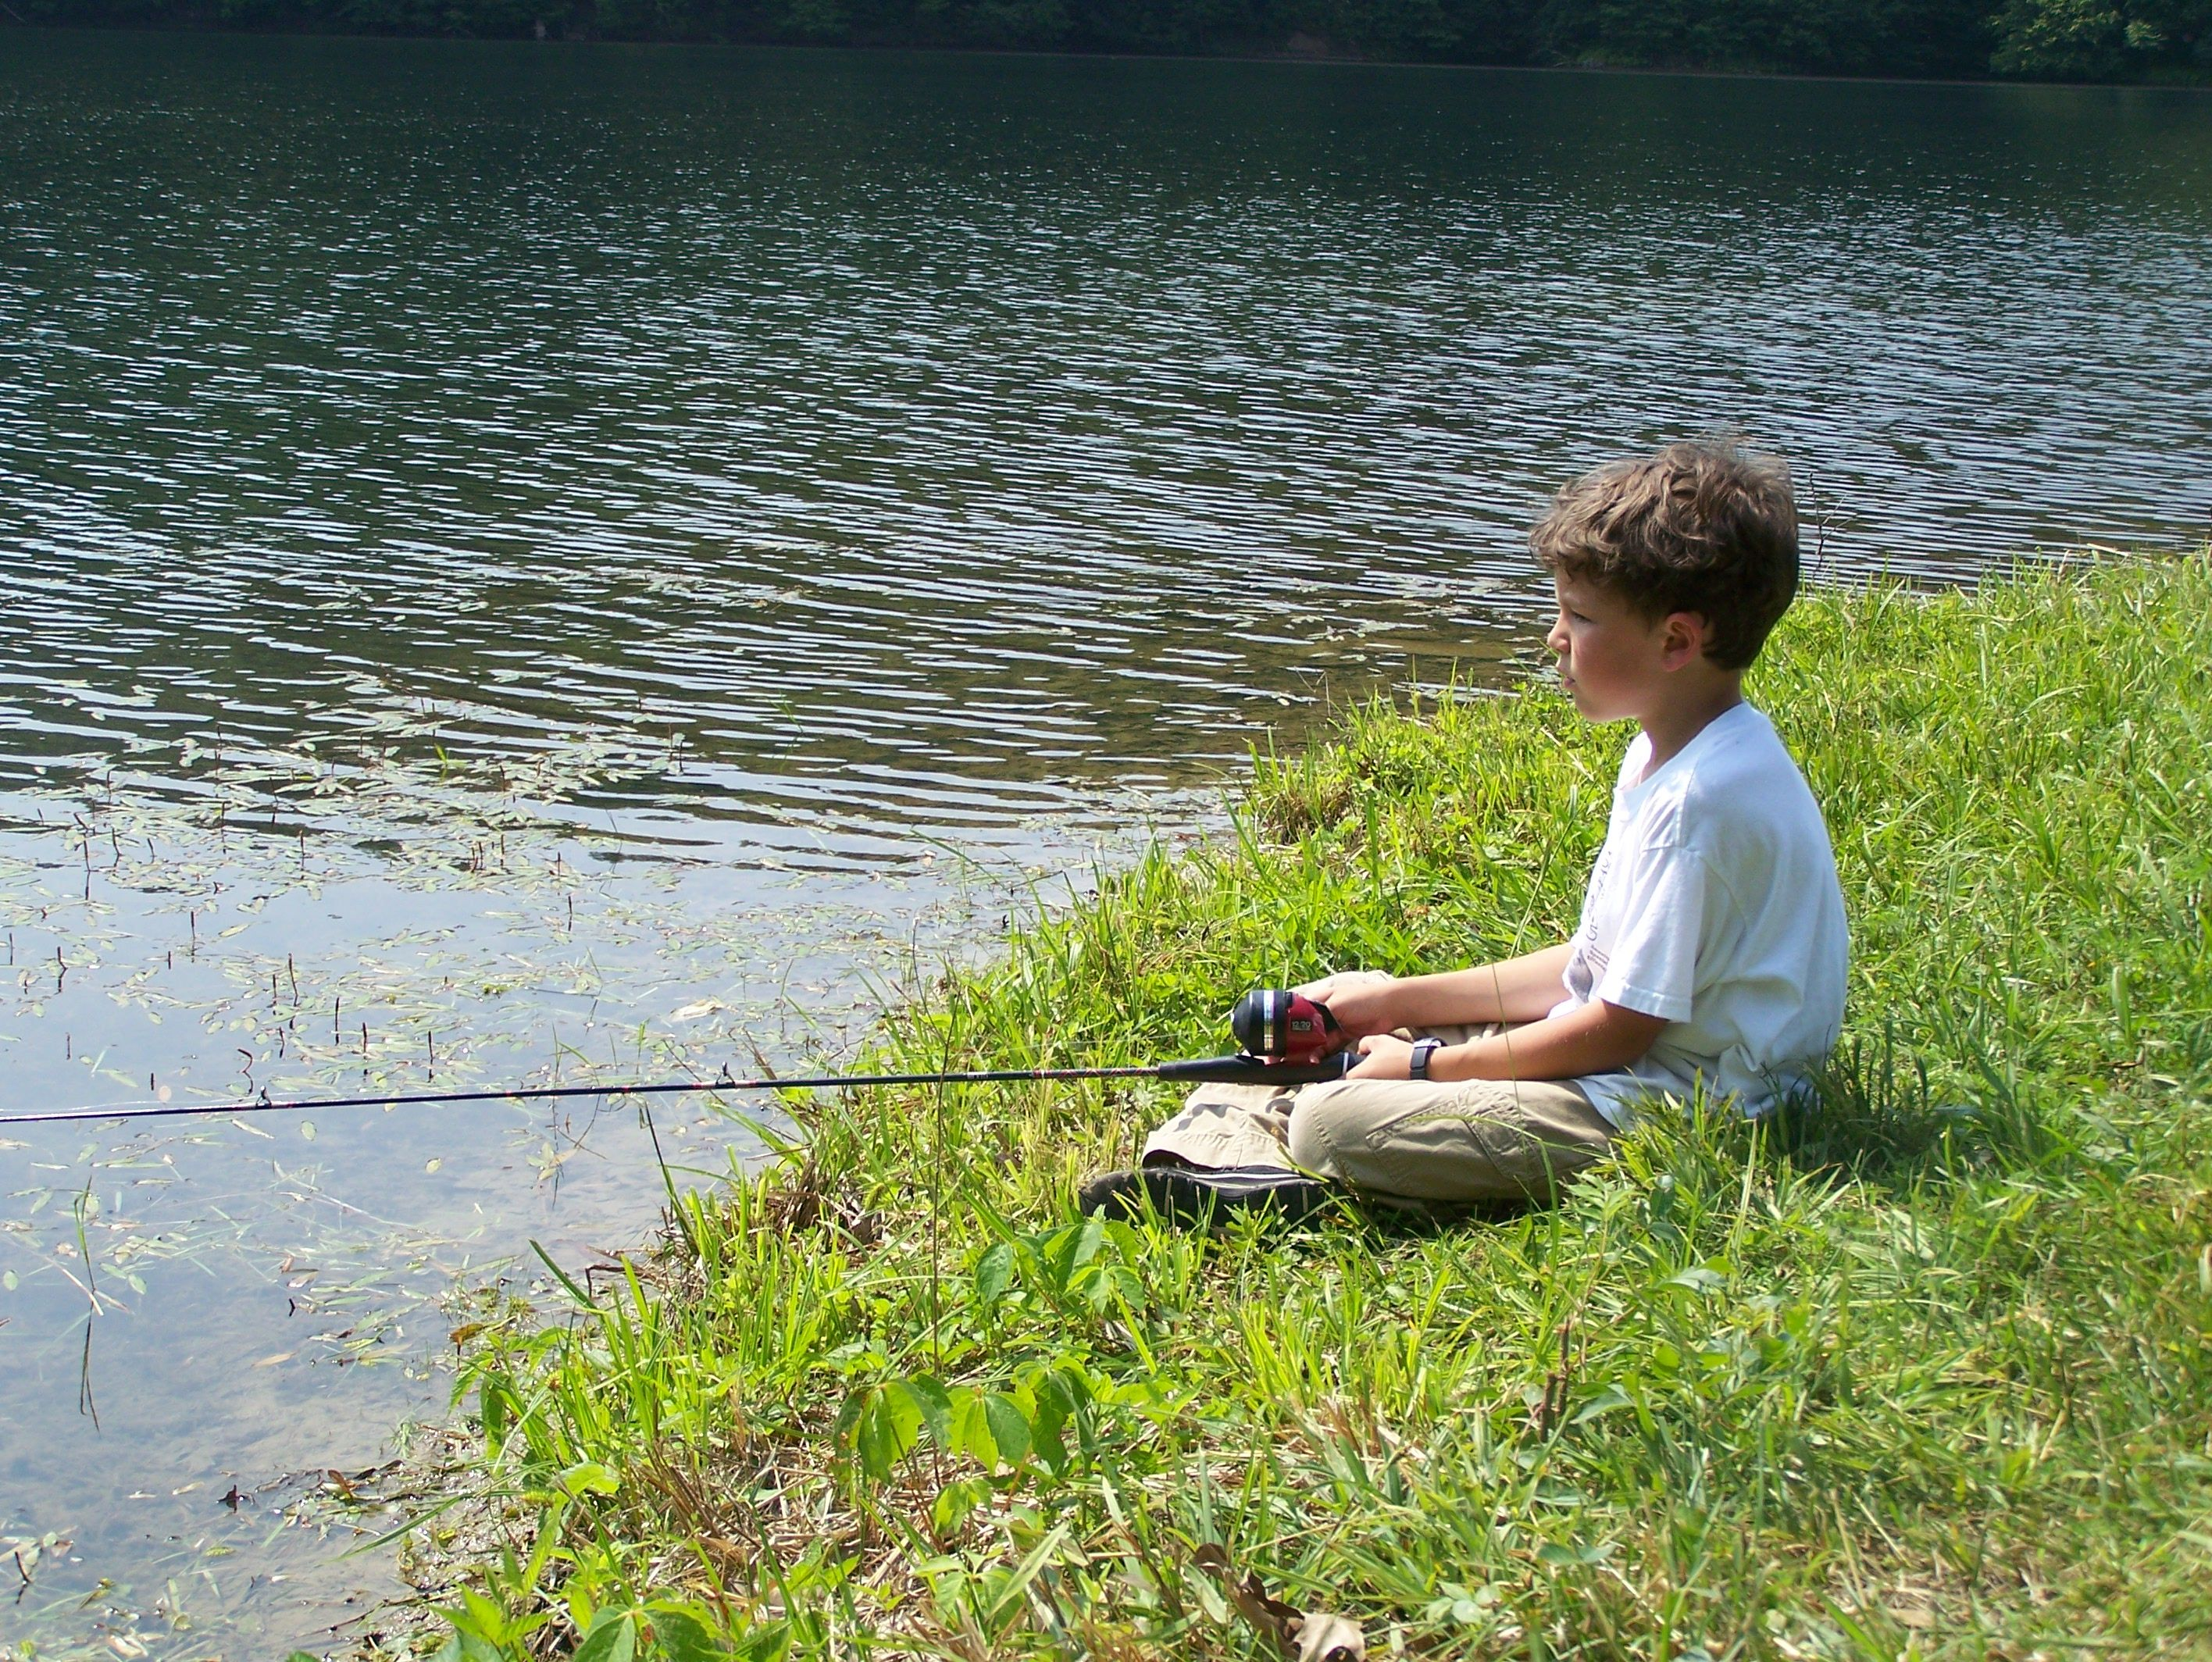 fishing in a pond sum sum summer time pinterest